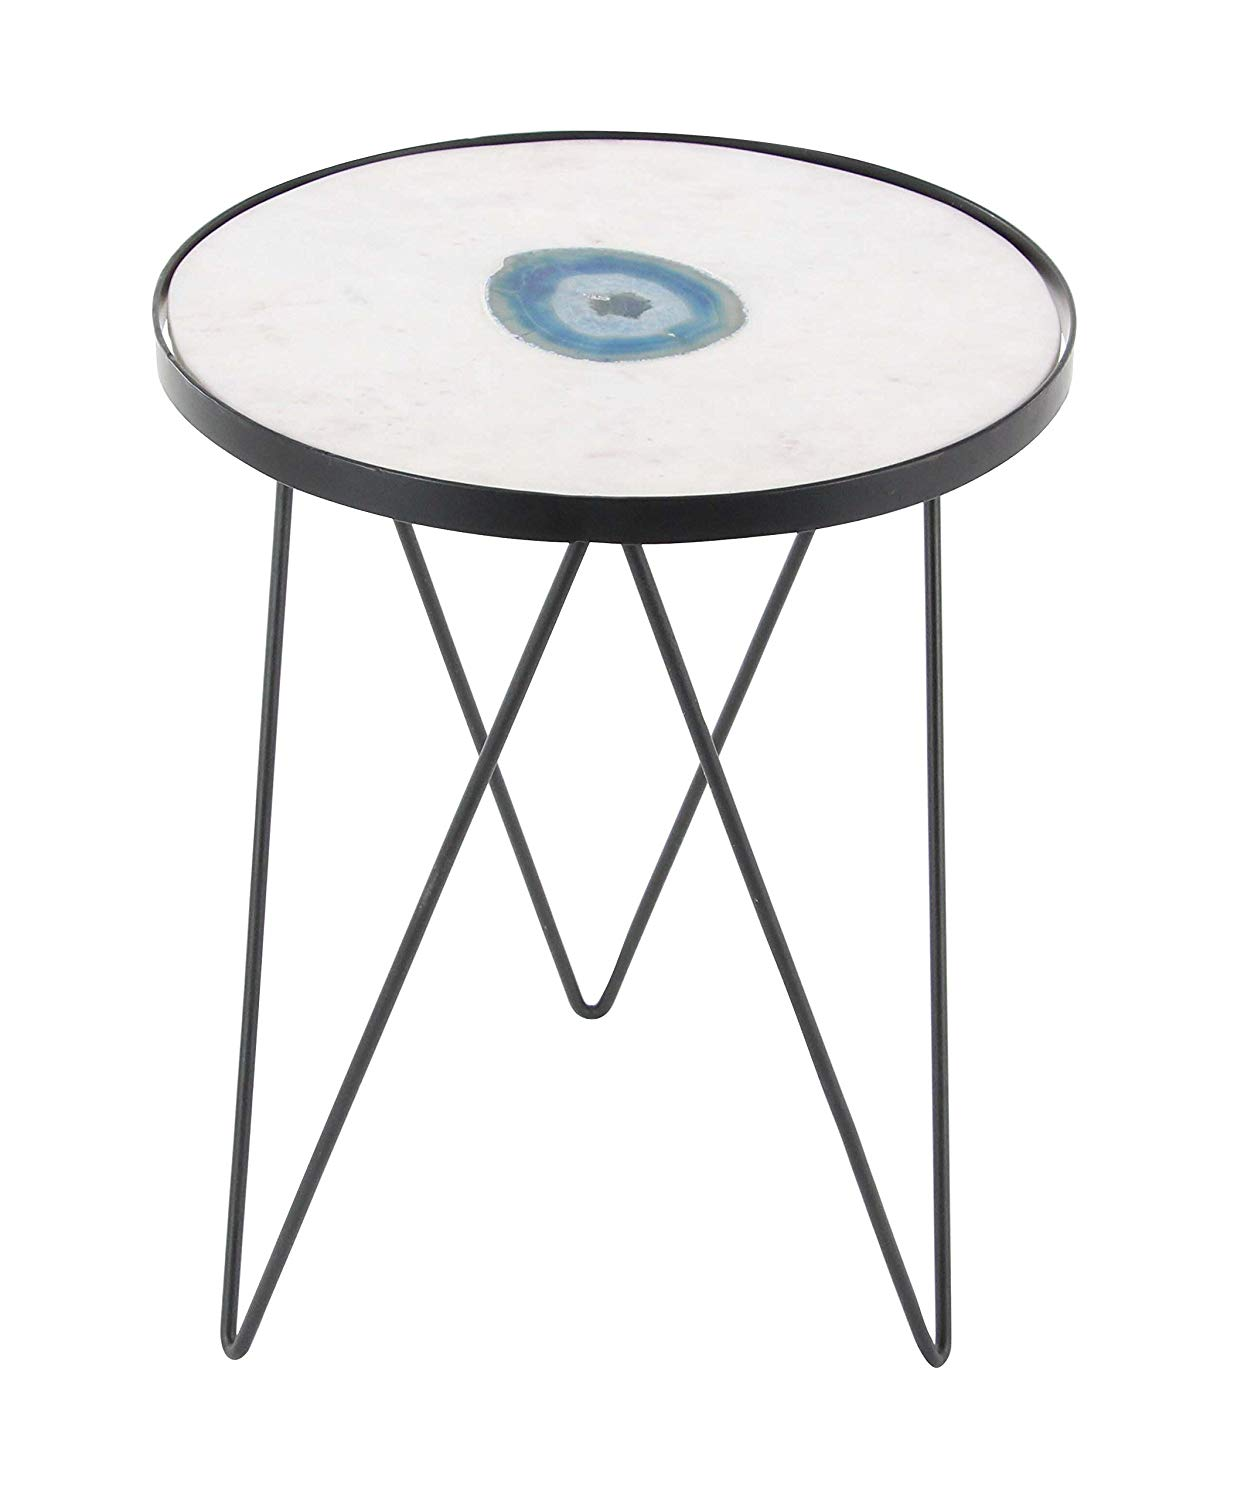 small round cover accent wooden decorating table unfinished white faux tablecloth pedestal wood ideas covers for threshold side hexagon full size drawing room furniture metal